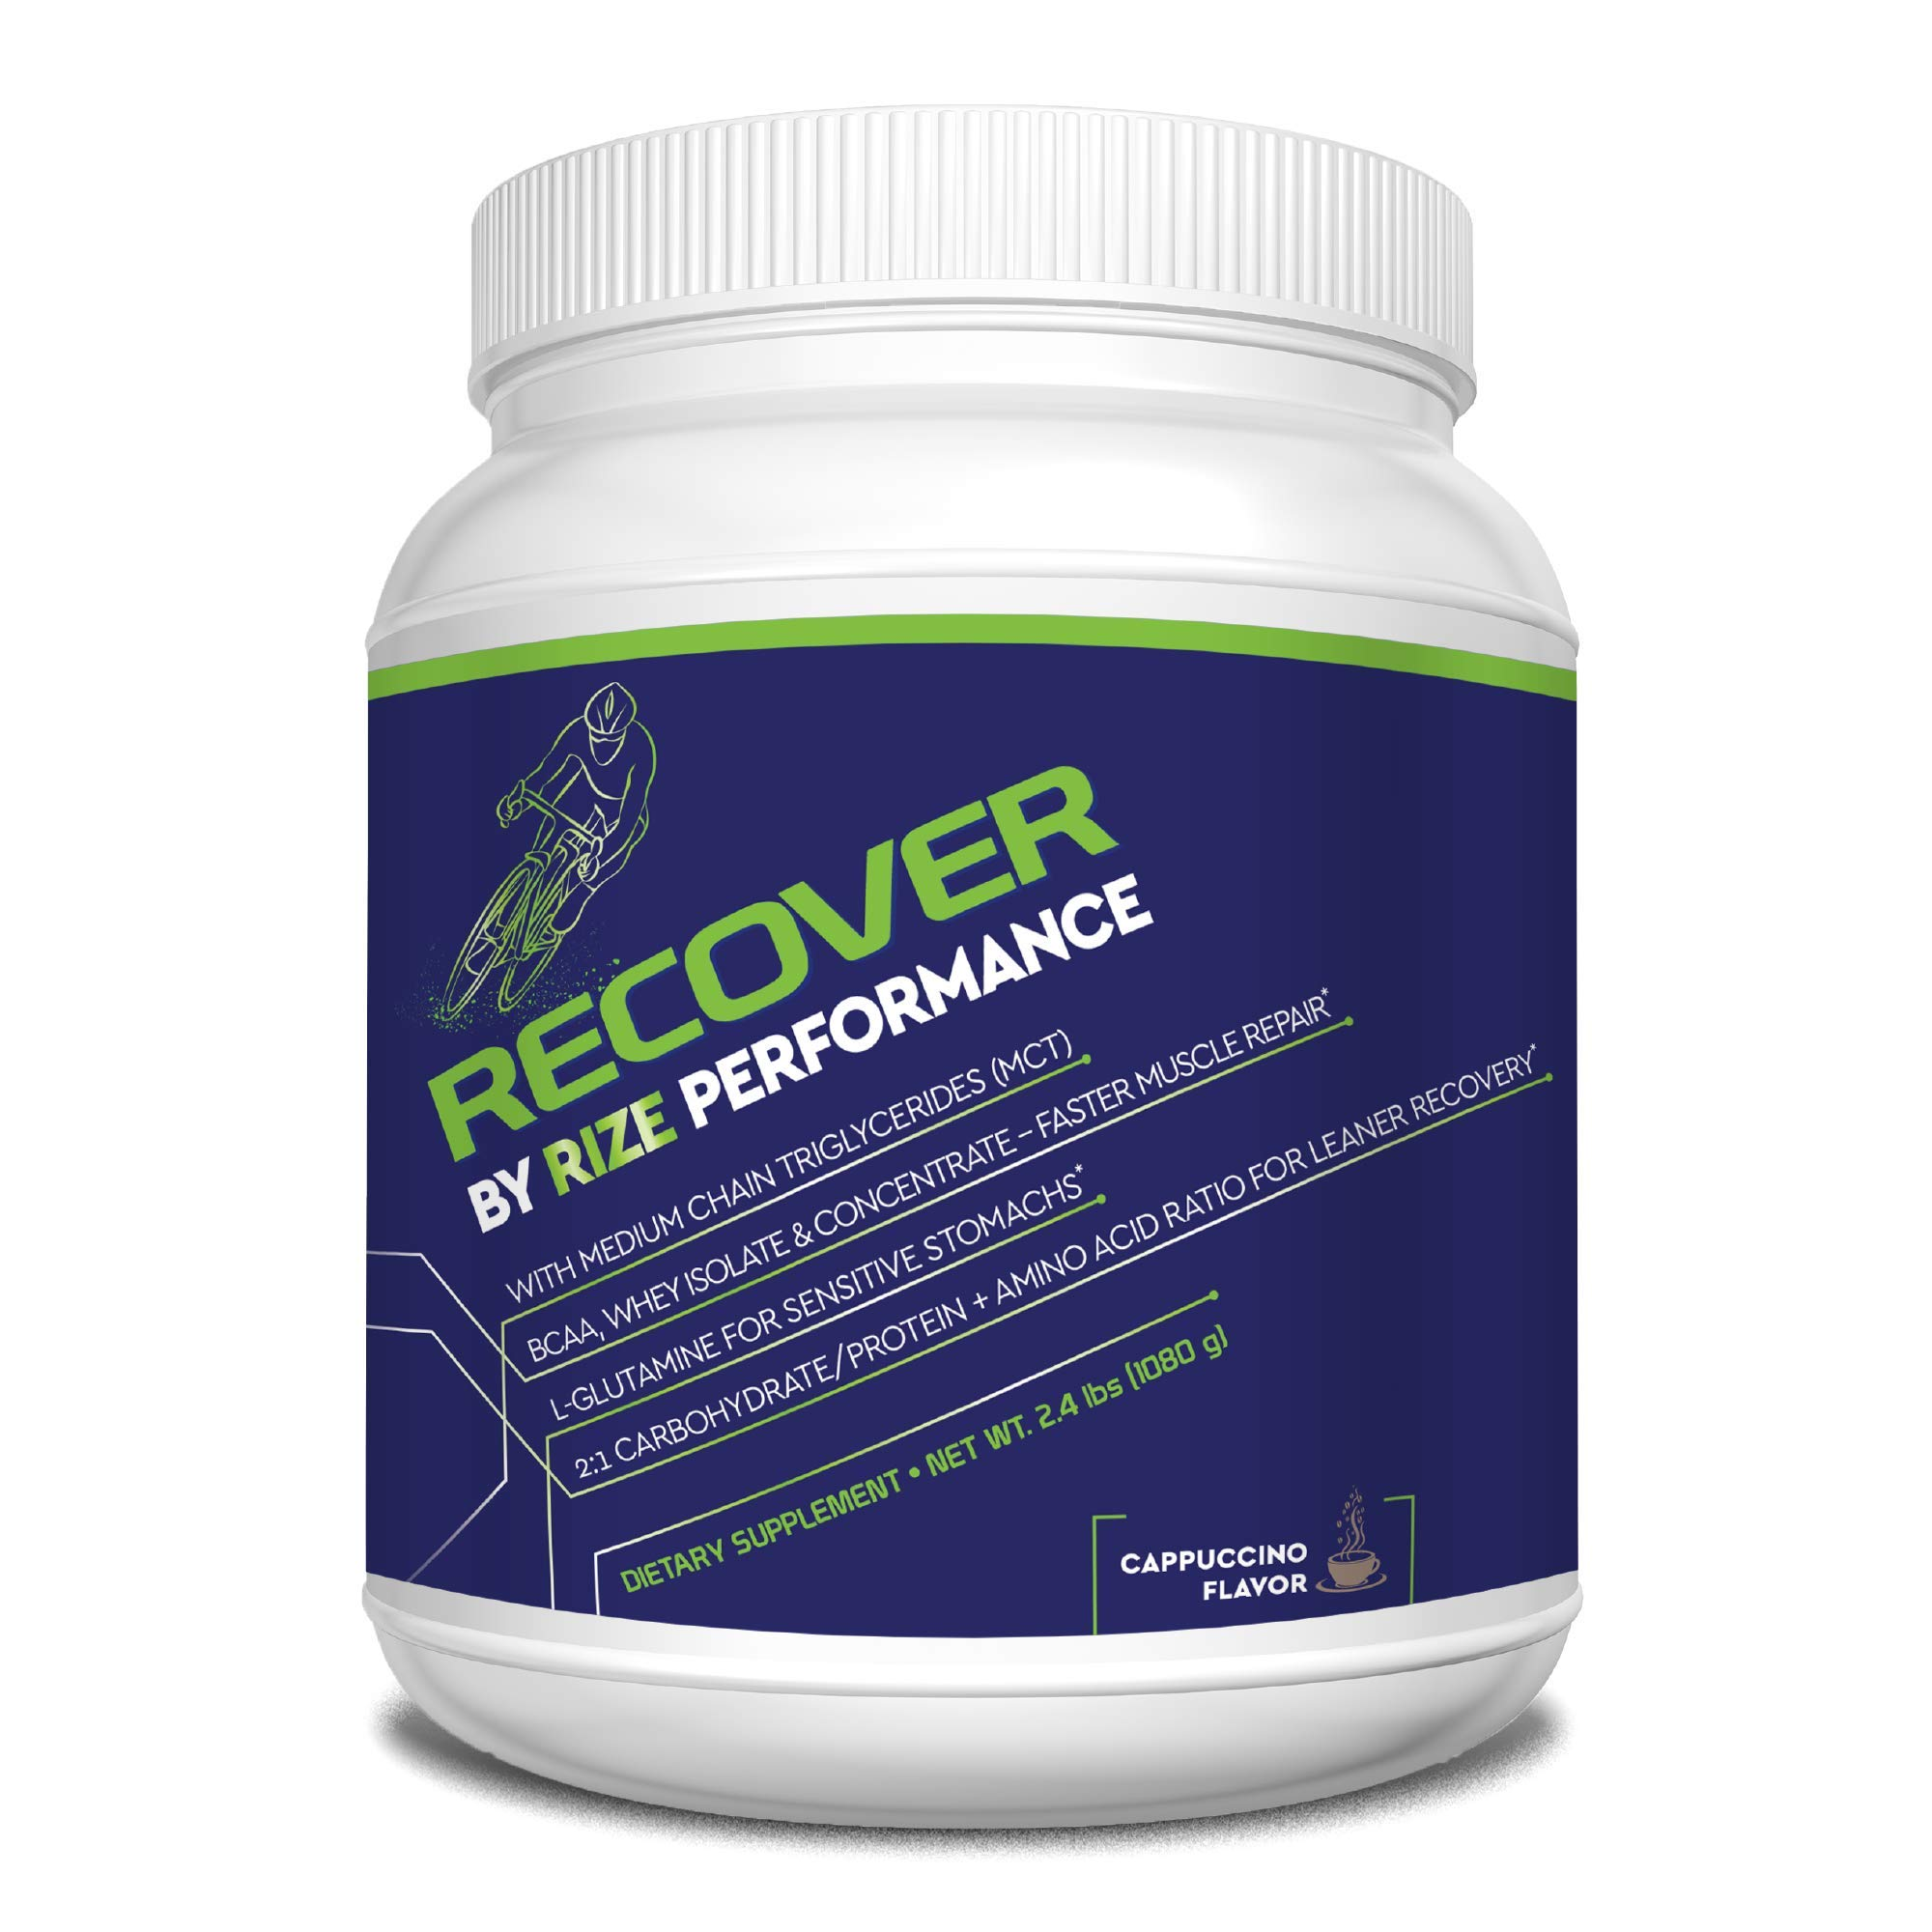 Cycling Fuel Recovery Powder - by Rize - All Natural Post Workout Muscle Recovery Supplement - Cappuccino 2.4 lbs